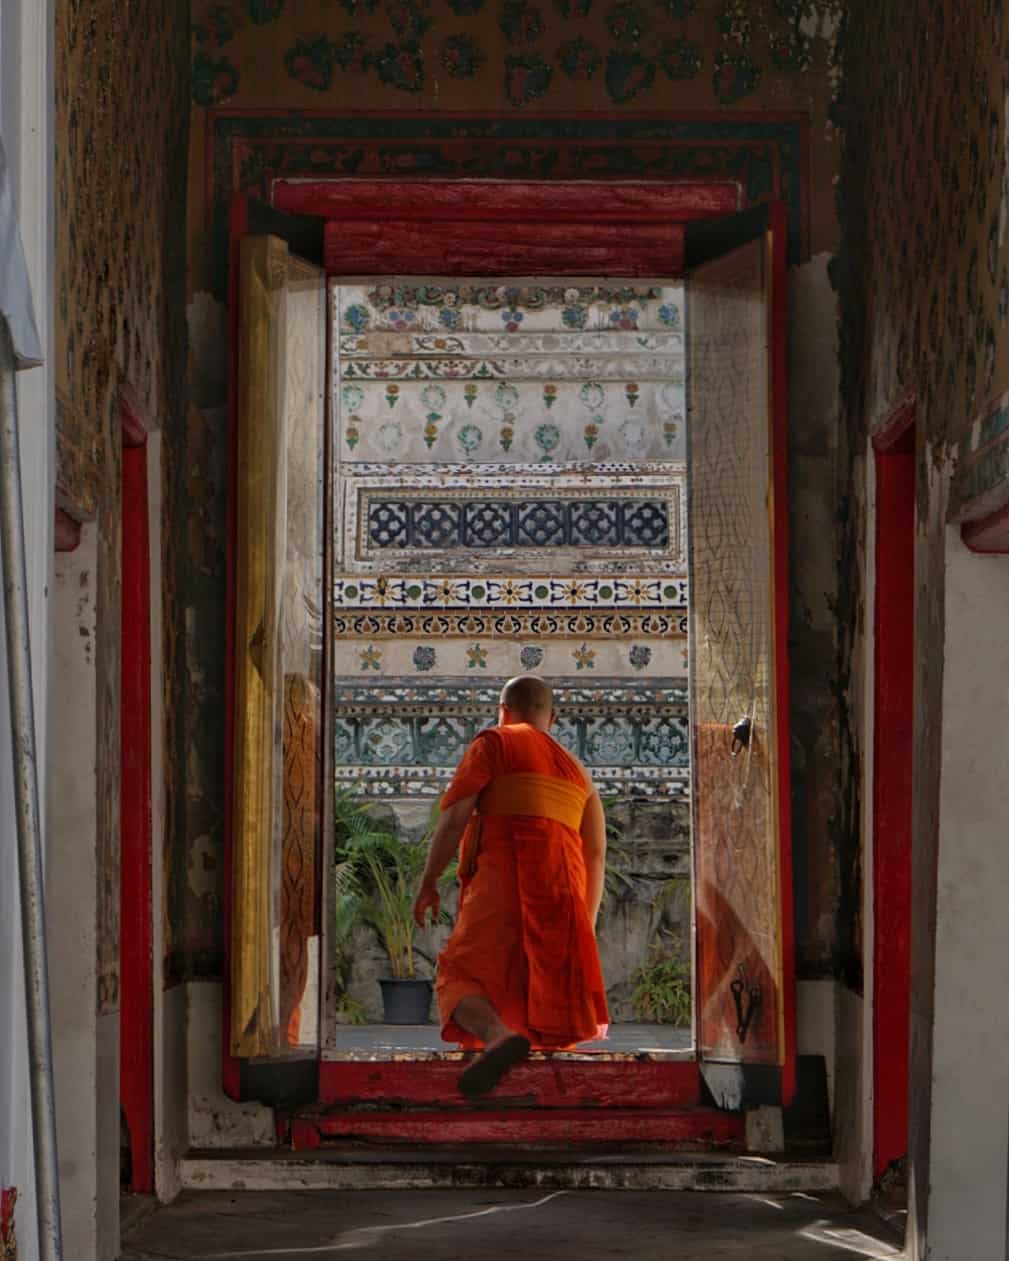 a monk in an orange robe walking through the doorway of a temple, planning a trip to thailand